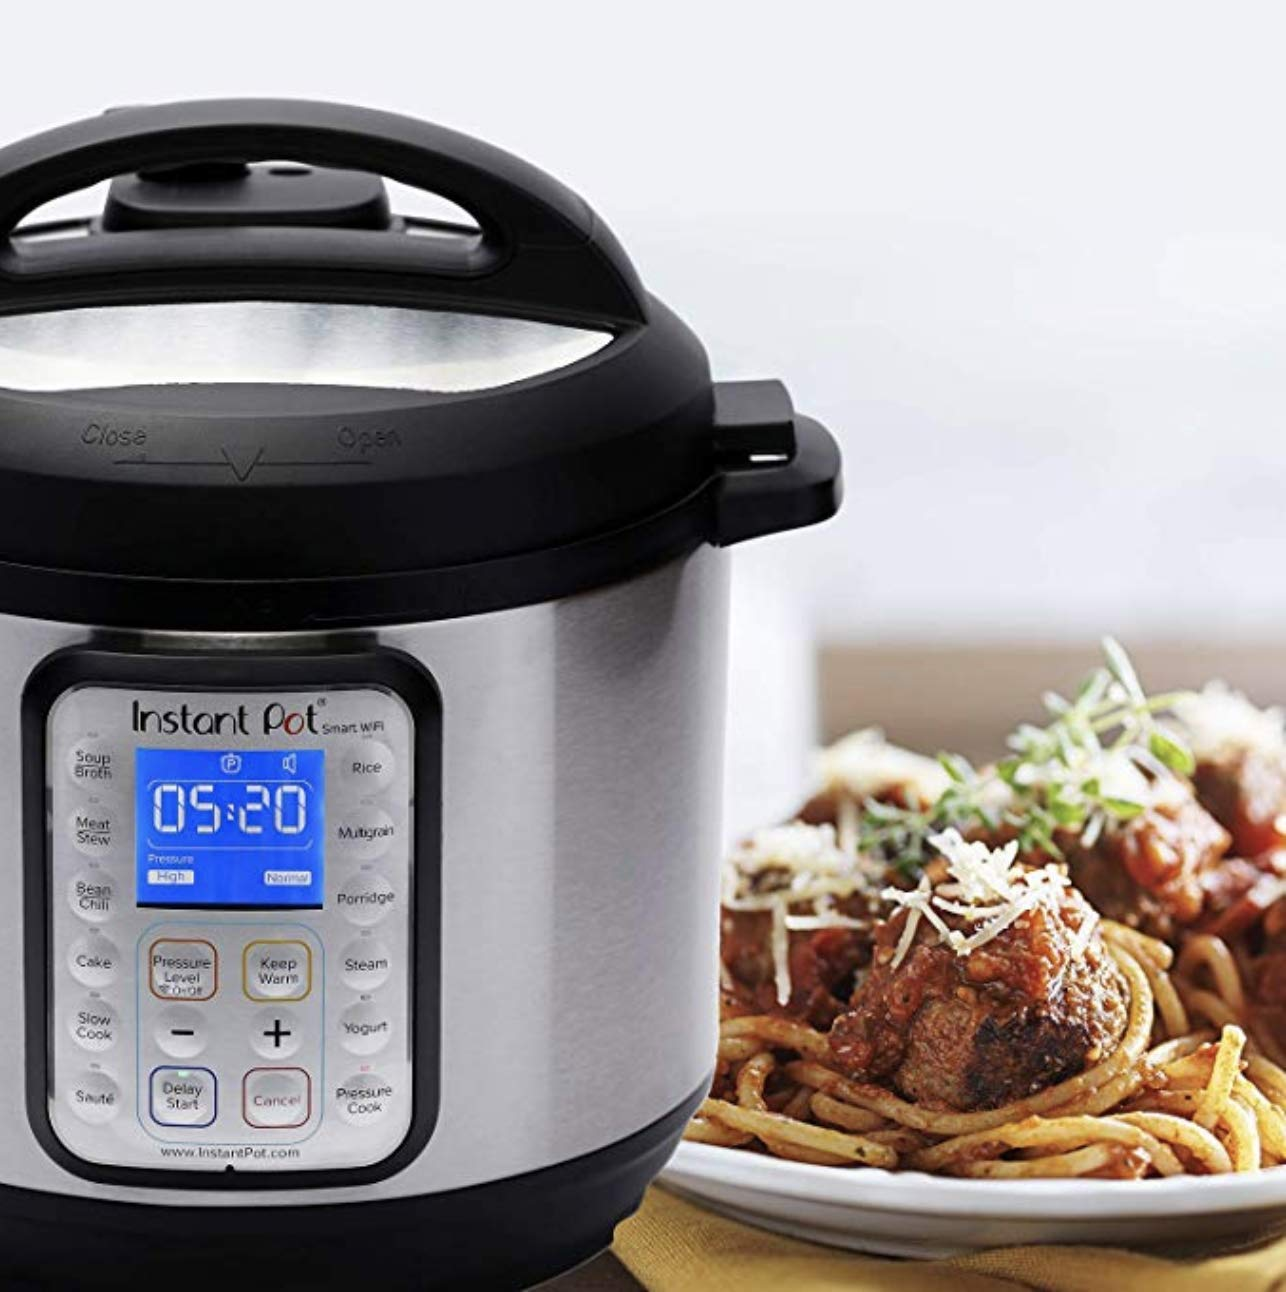 BRAND NEW Instant Pot Smart-60 WiFi 6 Qt Programmable Pressure Cooker, Slow Cooker, Silver